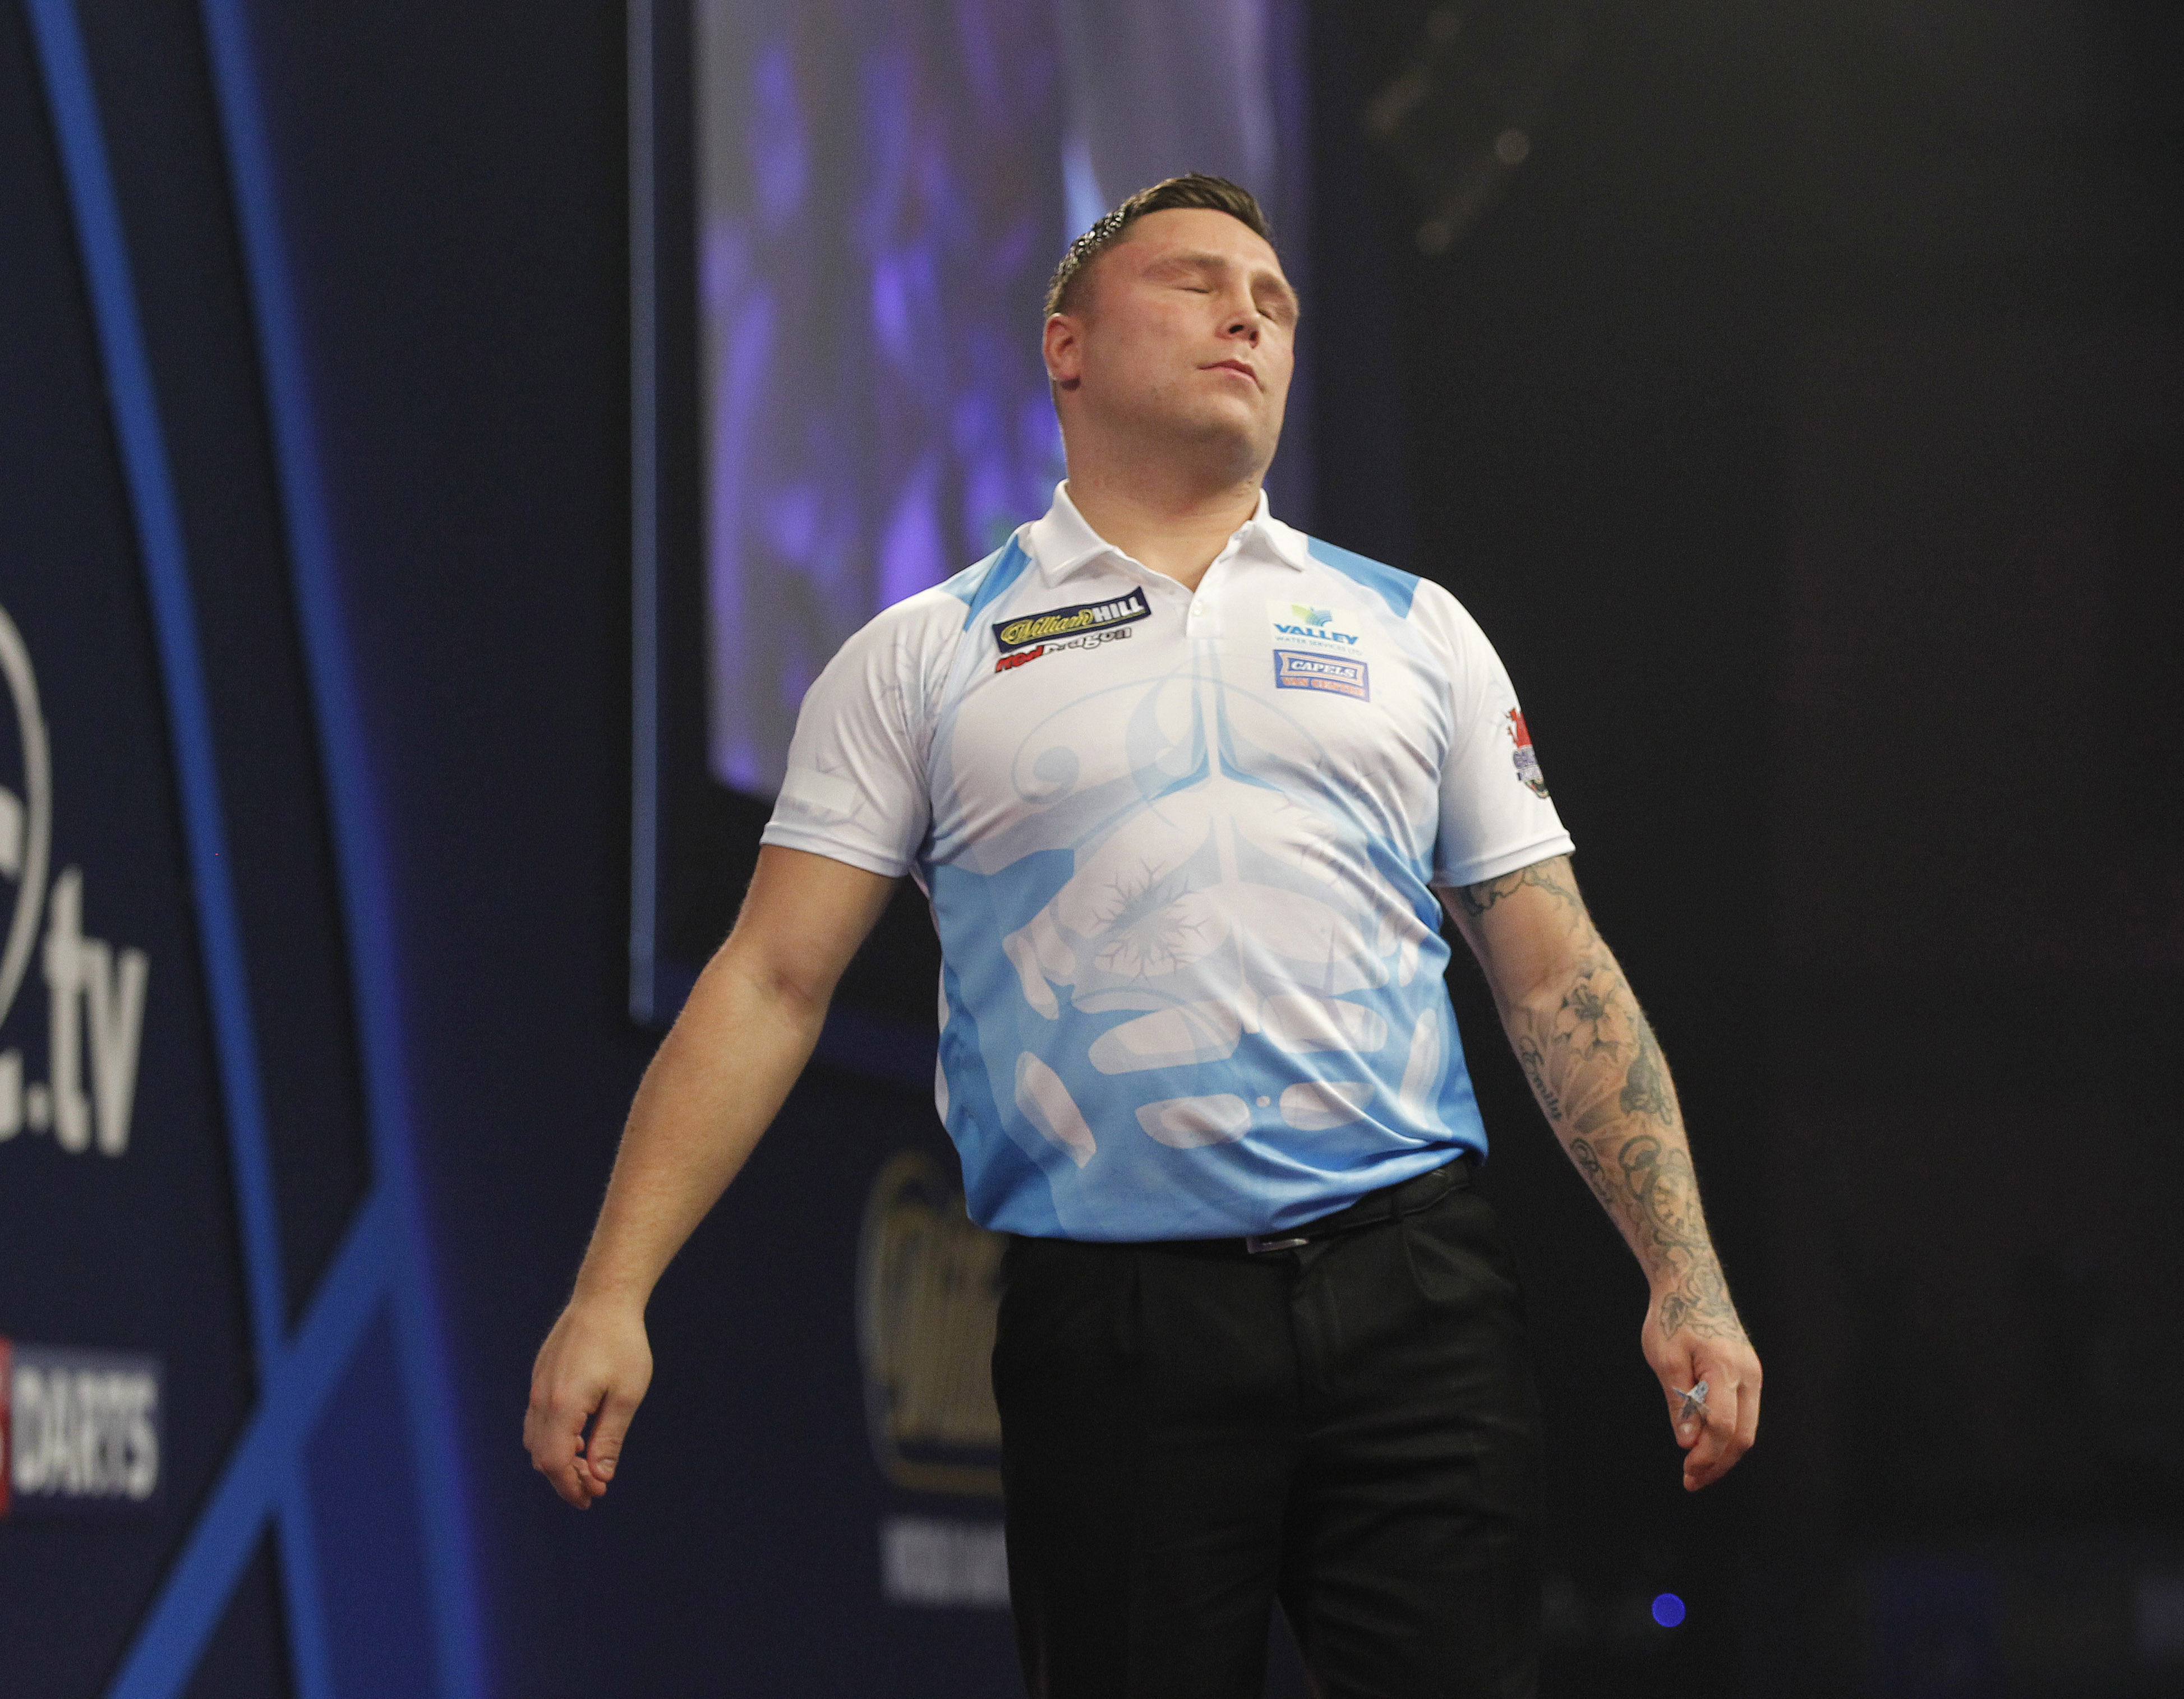 PDC World Cup of Darts betting Wales' Gerwyn Price